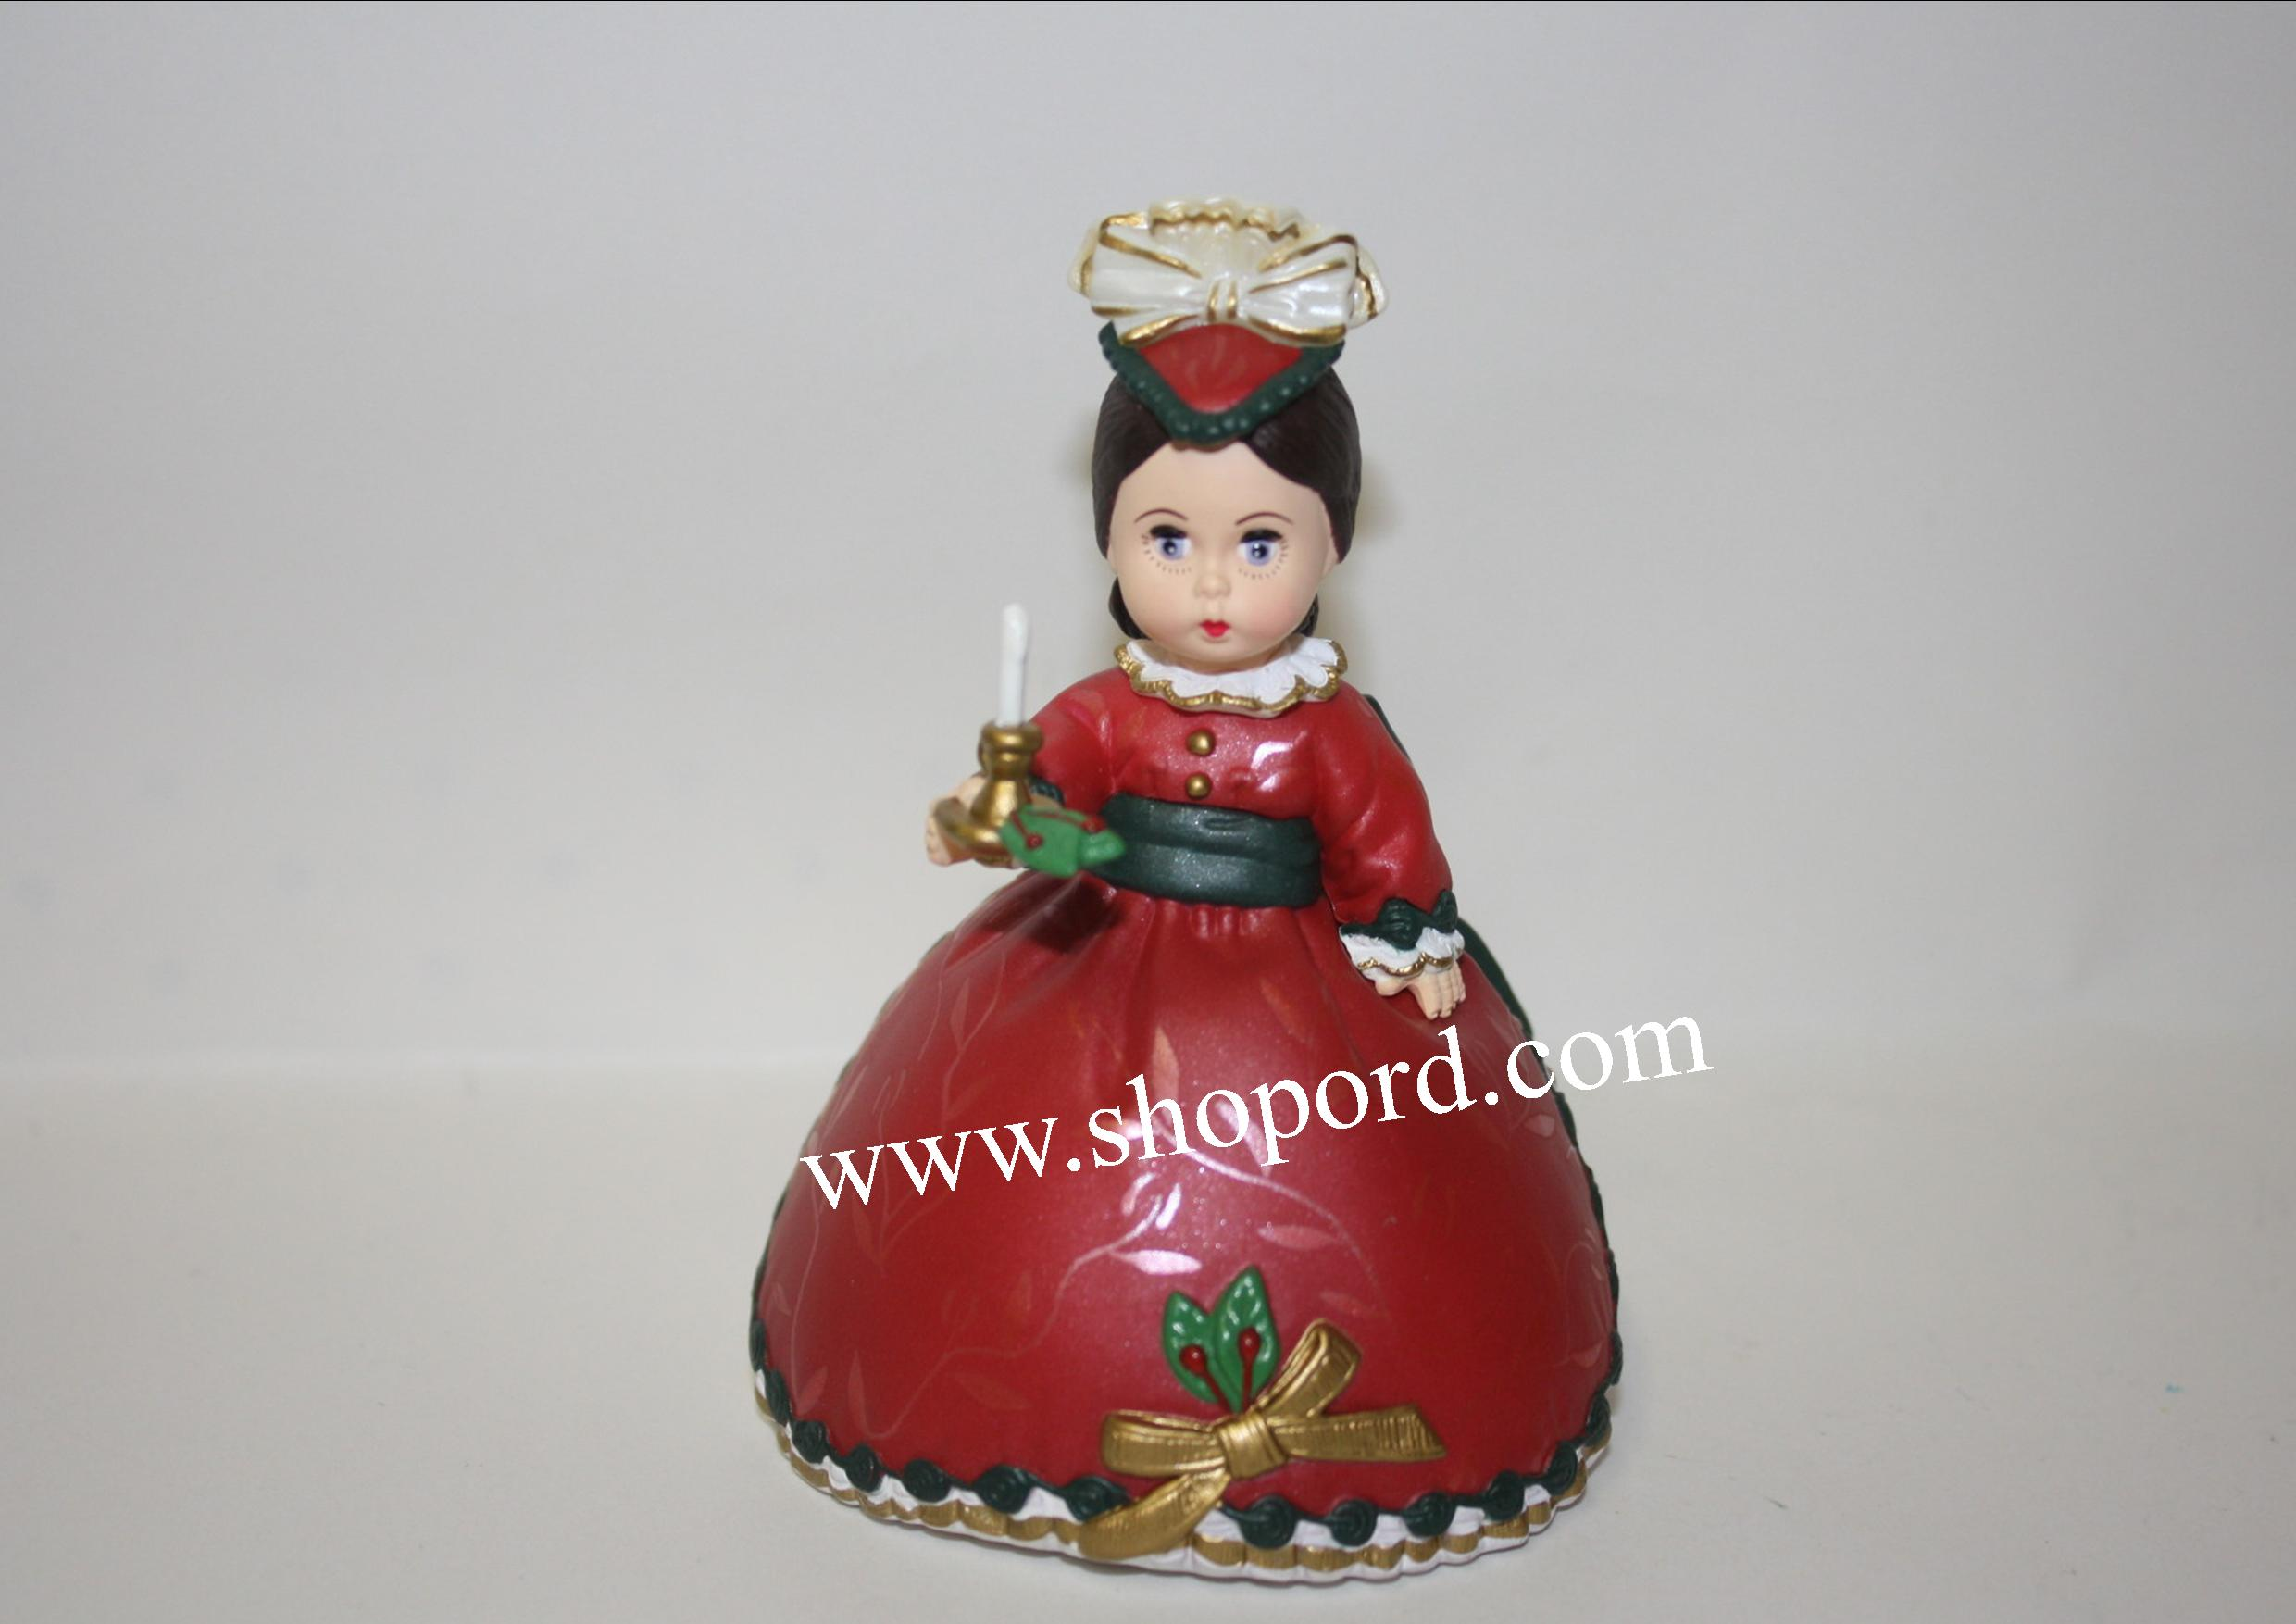 Hallmark 2001 Victorian Christmas Ornament Madame Alexander 6th In The Series QX6855